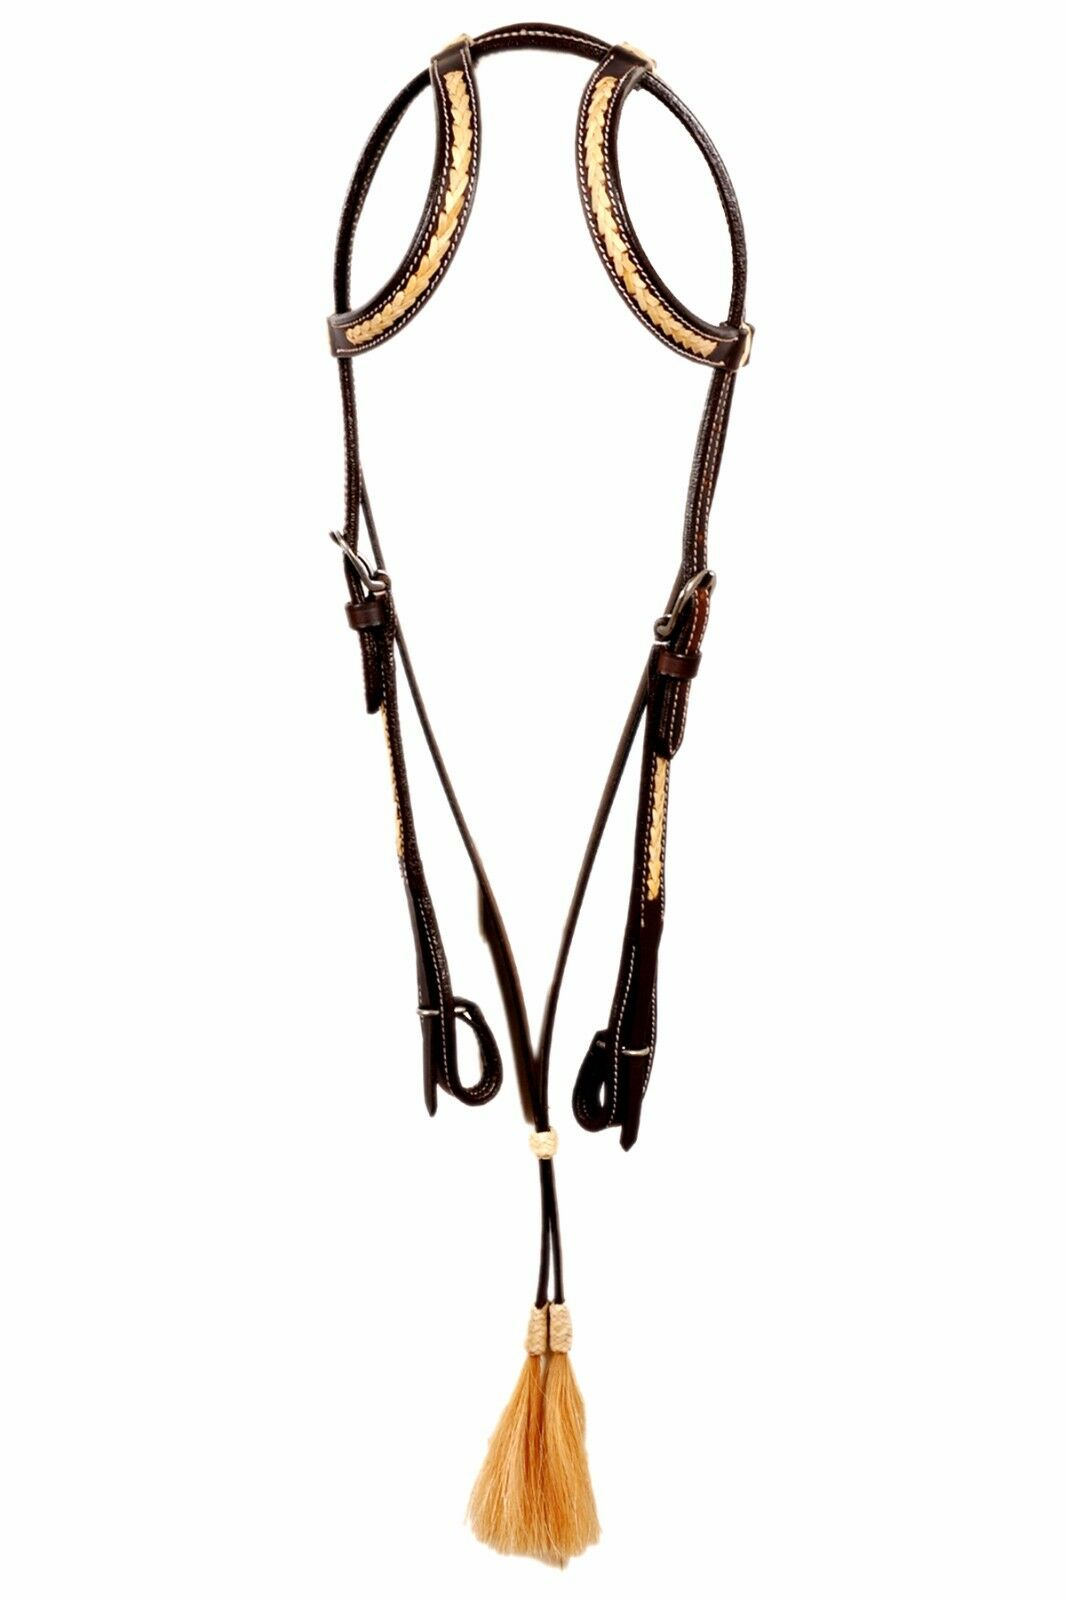 Western Dark Oil Leather Two  Ear Style Rawhide Weaved Headstall With Tassel  general high quality